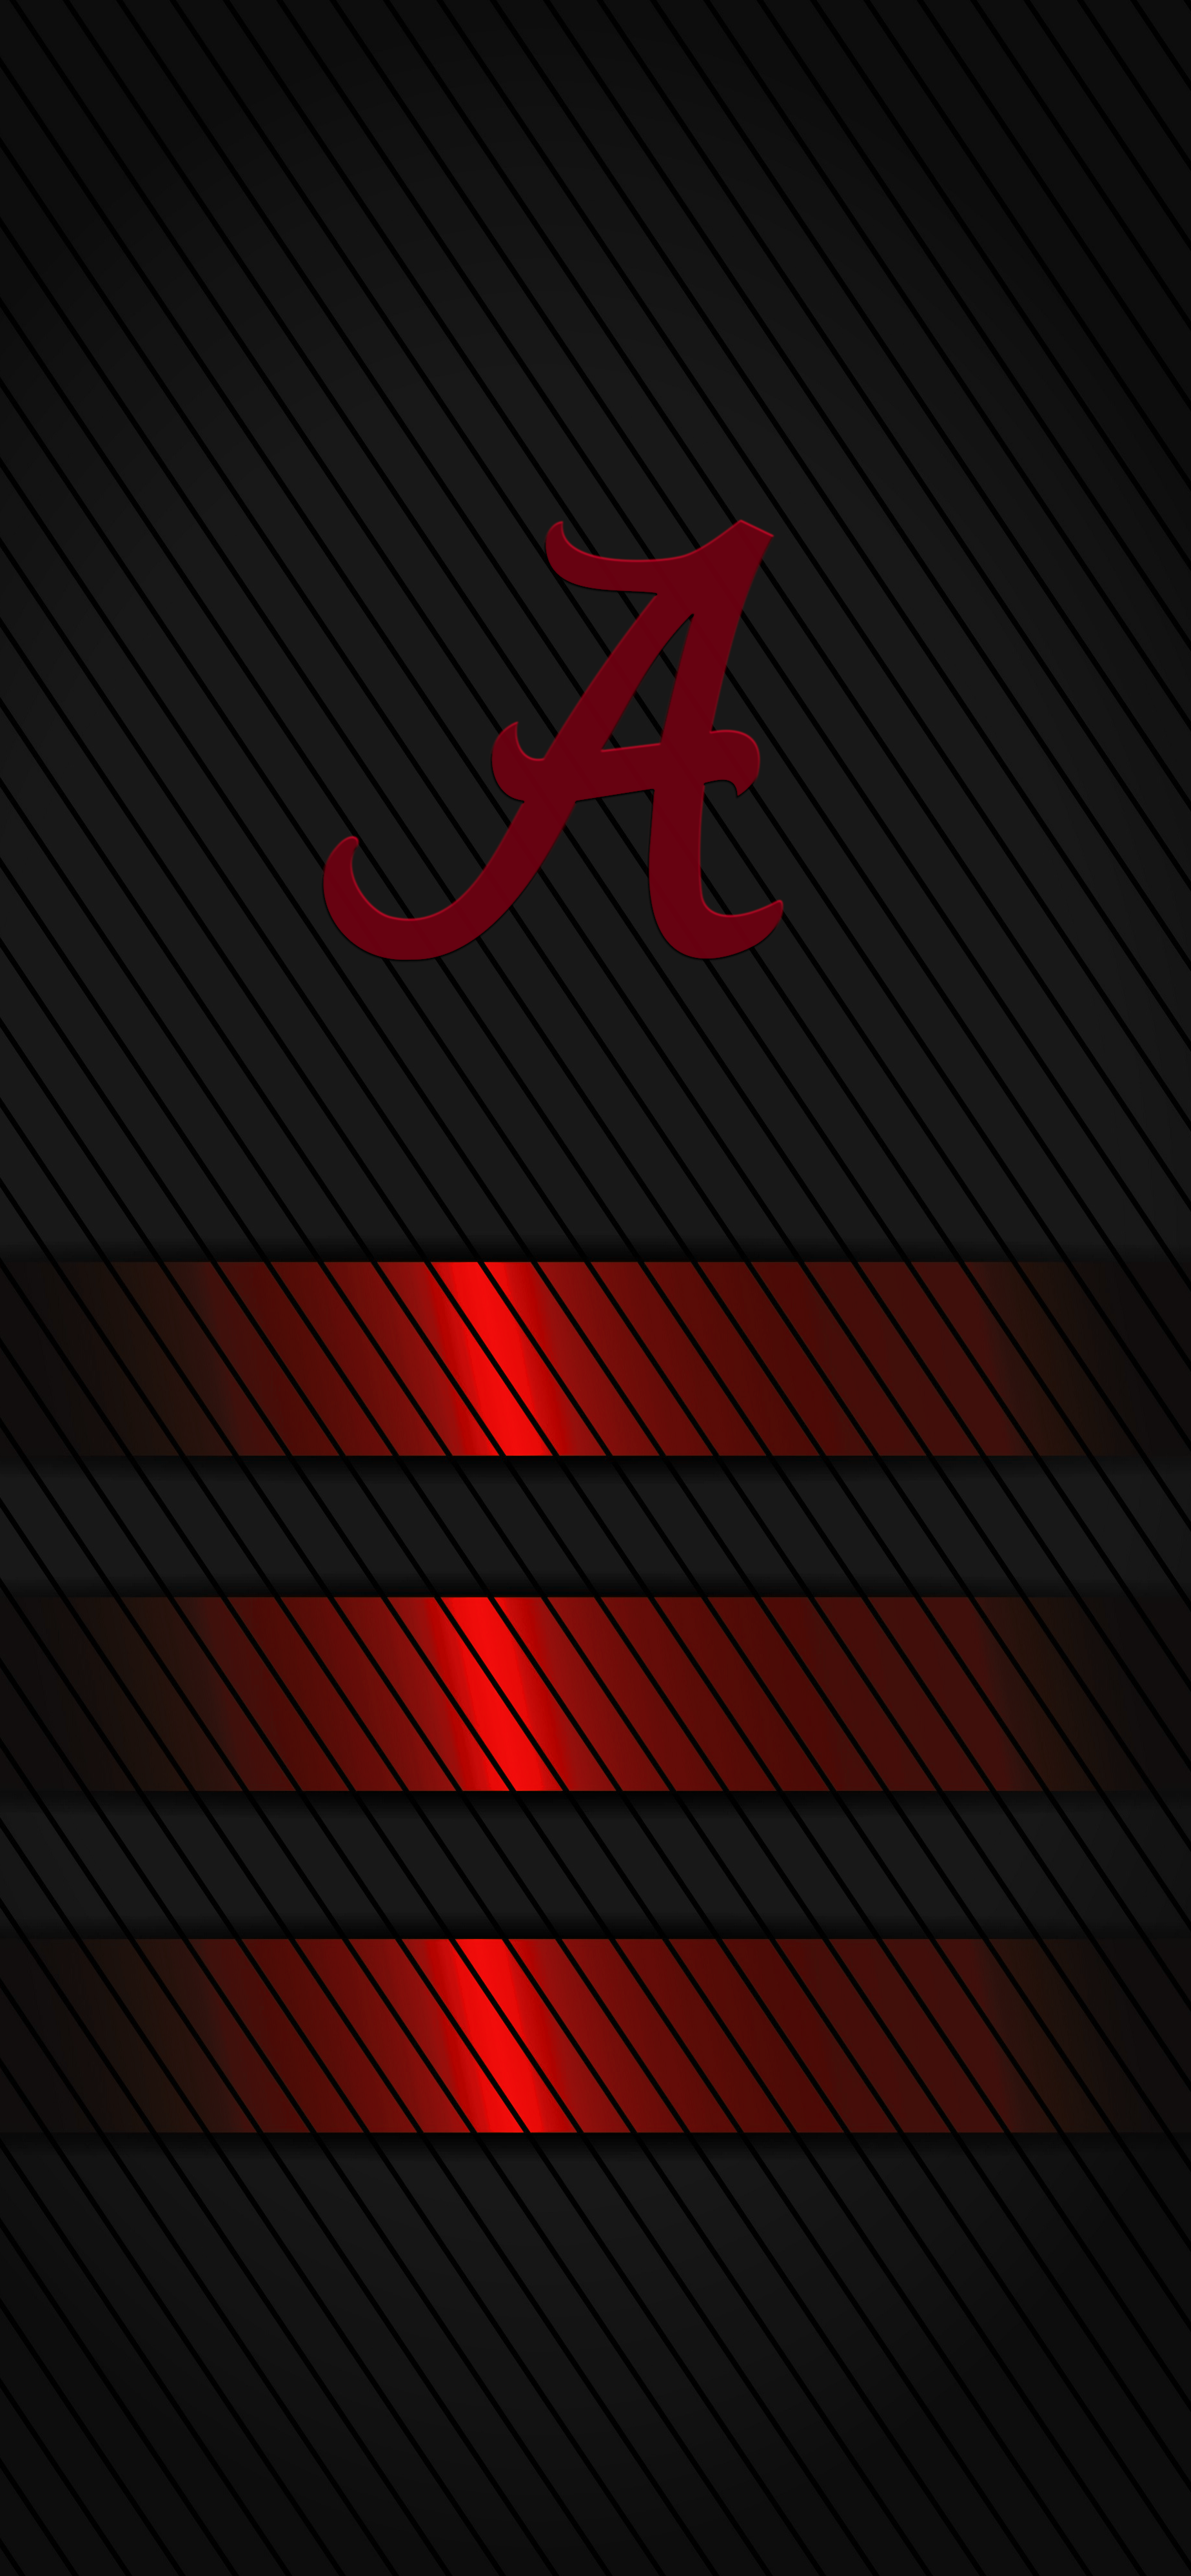 Modern 5 Alabama Crimson Tide Alabama Crimson Tide Logo Crimson Tide Football